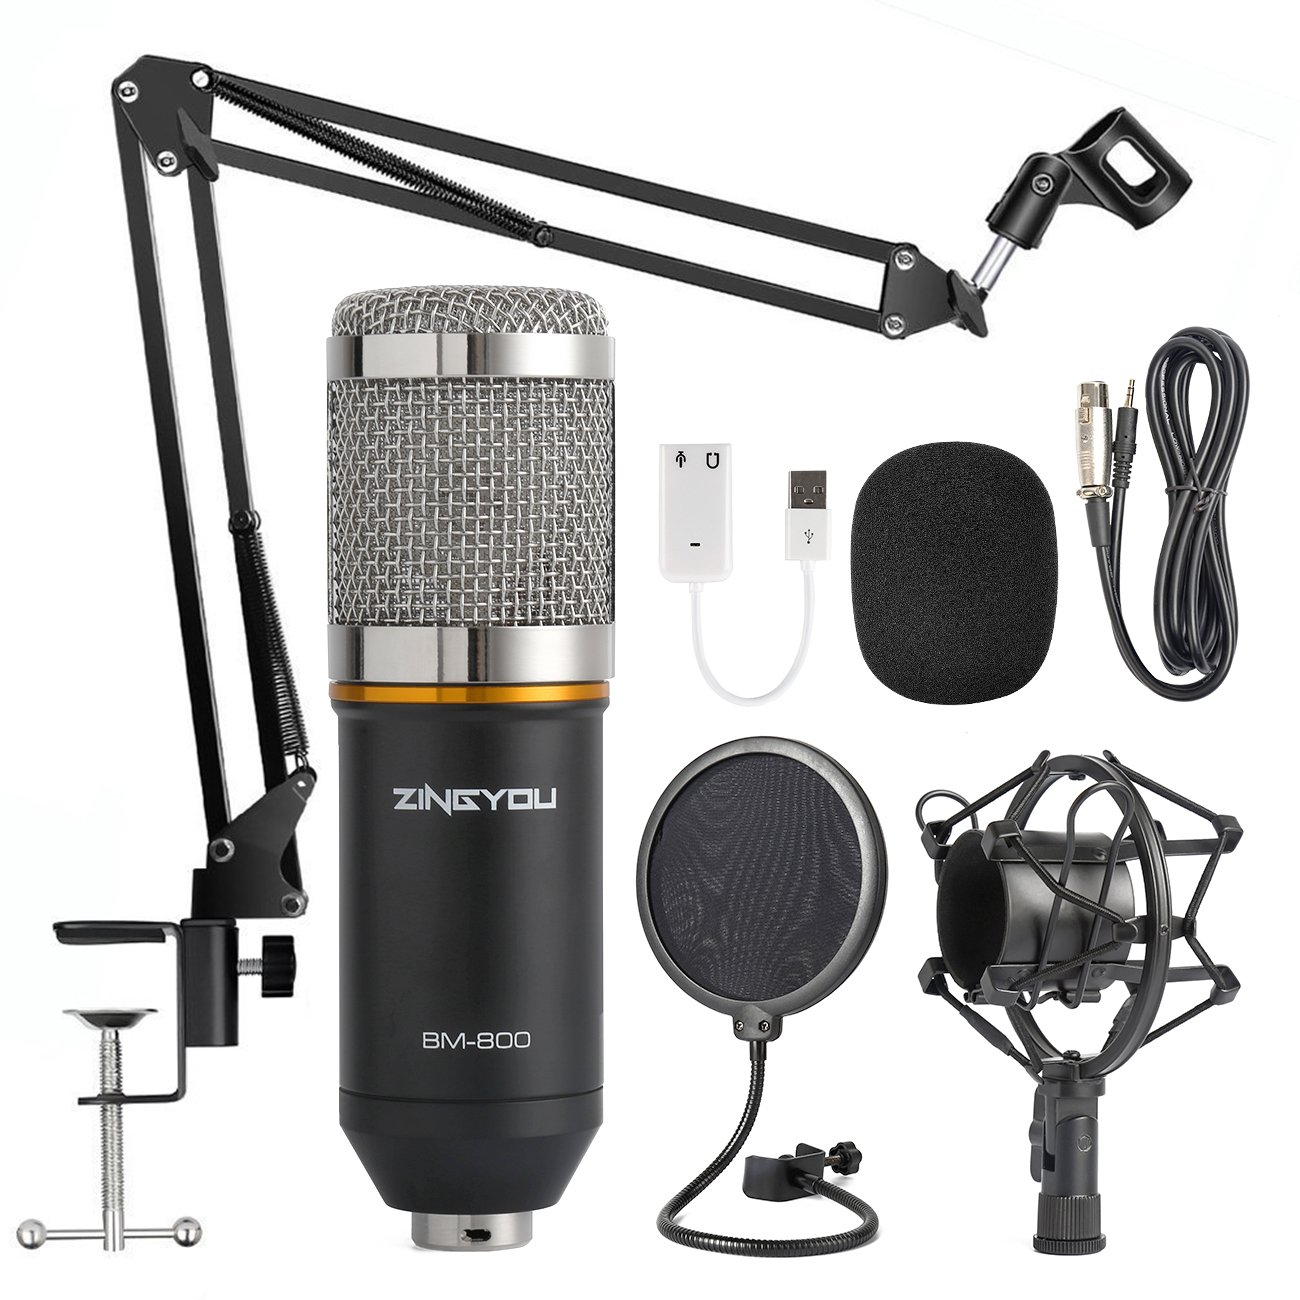 ZINGYOU Condenser Microphone Bundle, BM-800 Mic Kit with Adjustable Mic Suspension Scissor Arm, Shock Mount and Double-layer Pop Filter for Studio Recording & Brocasting (BM-800 Microphone Bundle) by ZINGYOU